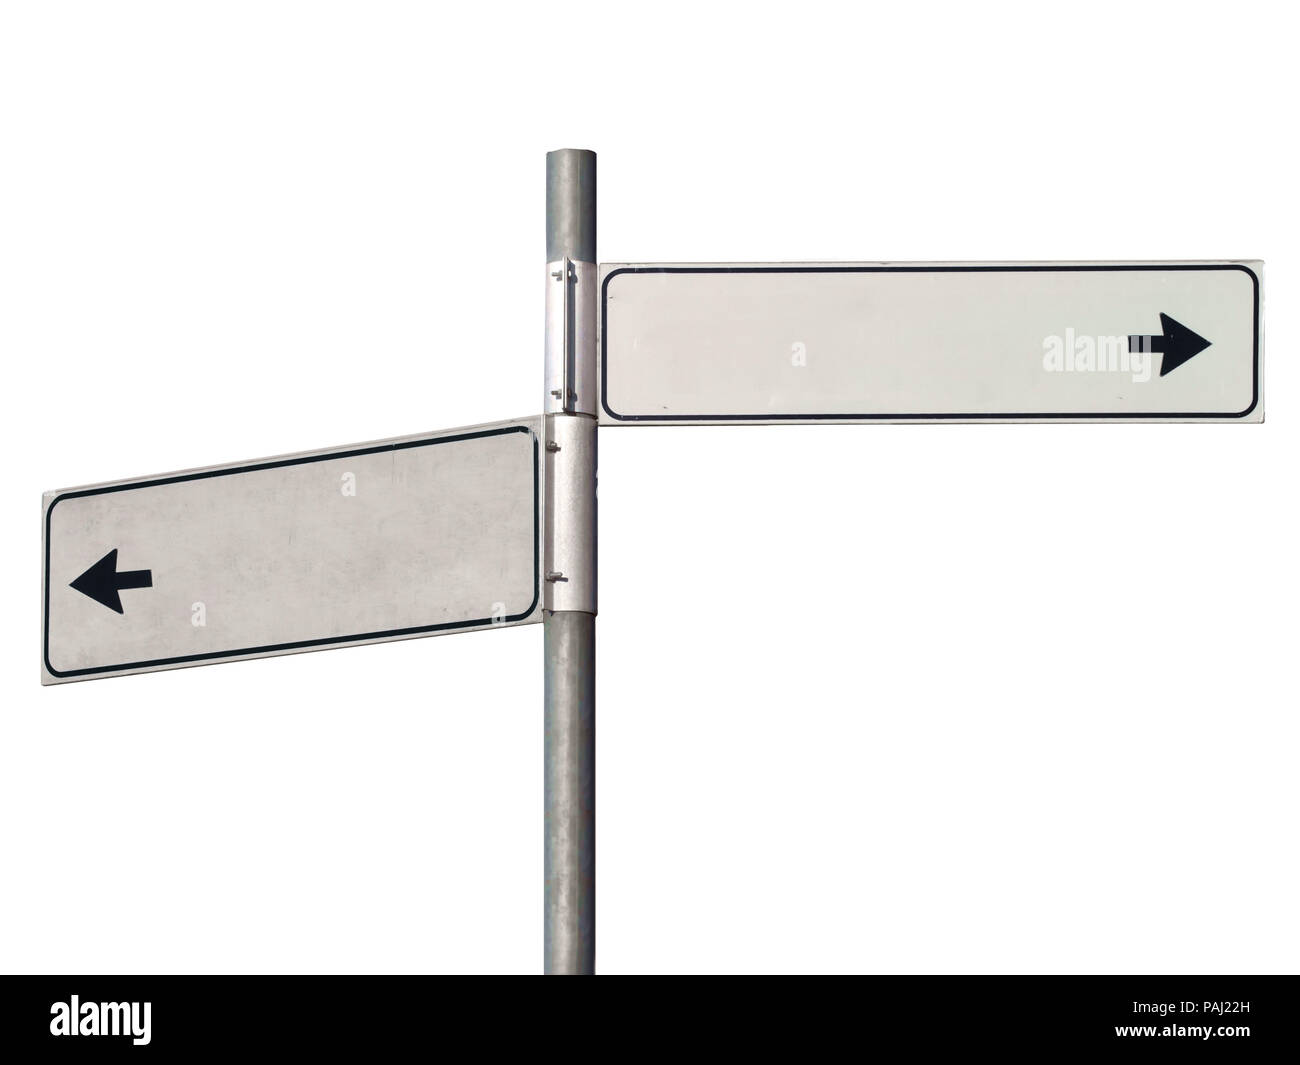 Black and white road sign pointing in two direction, isolated on white. - Stock Image